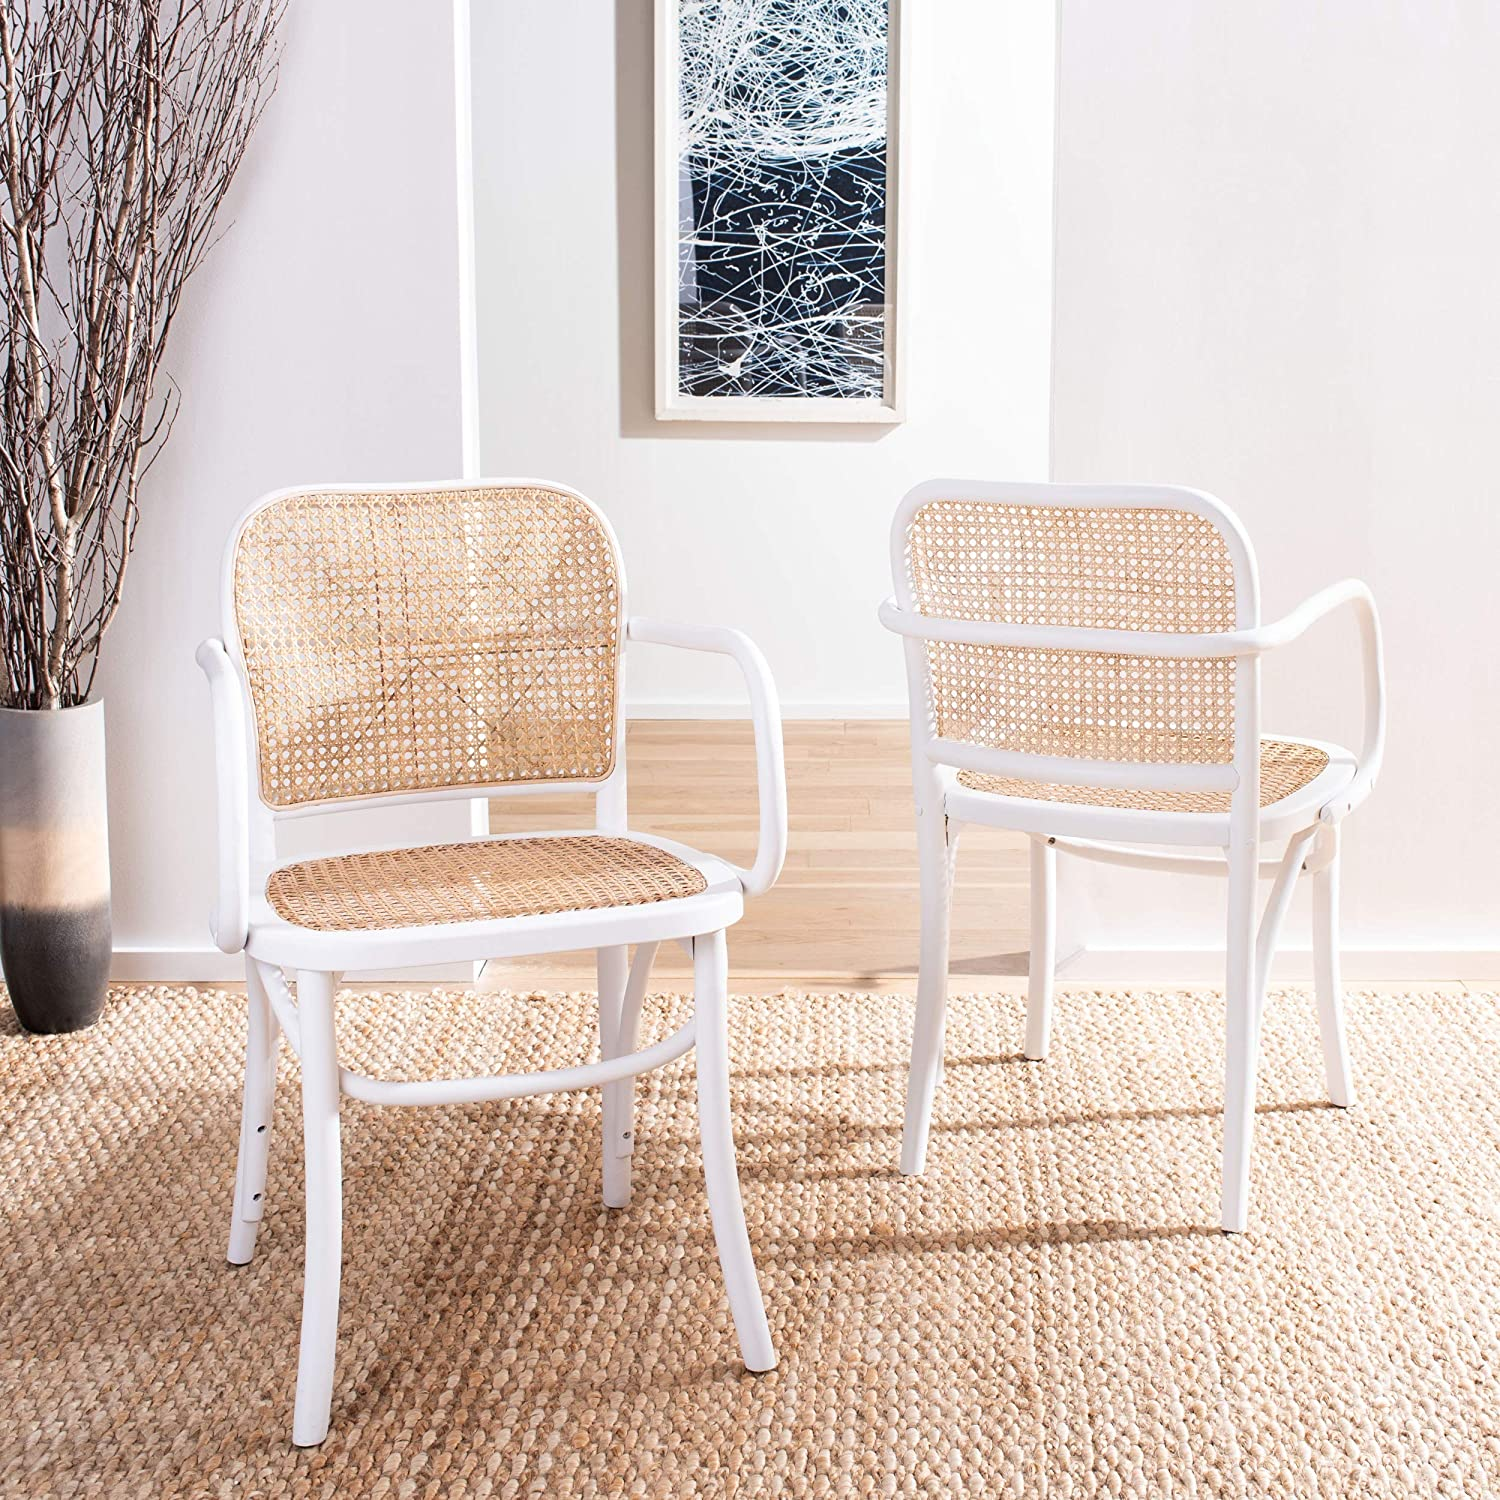 Safavieh Home Keiko White and Natural Cane Dining Chair,